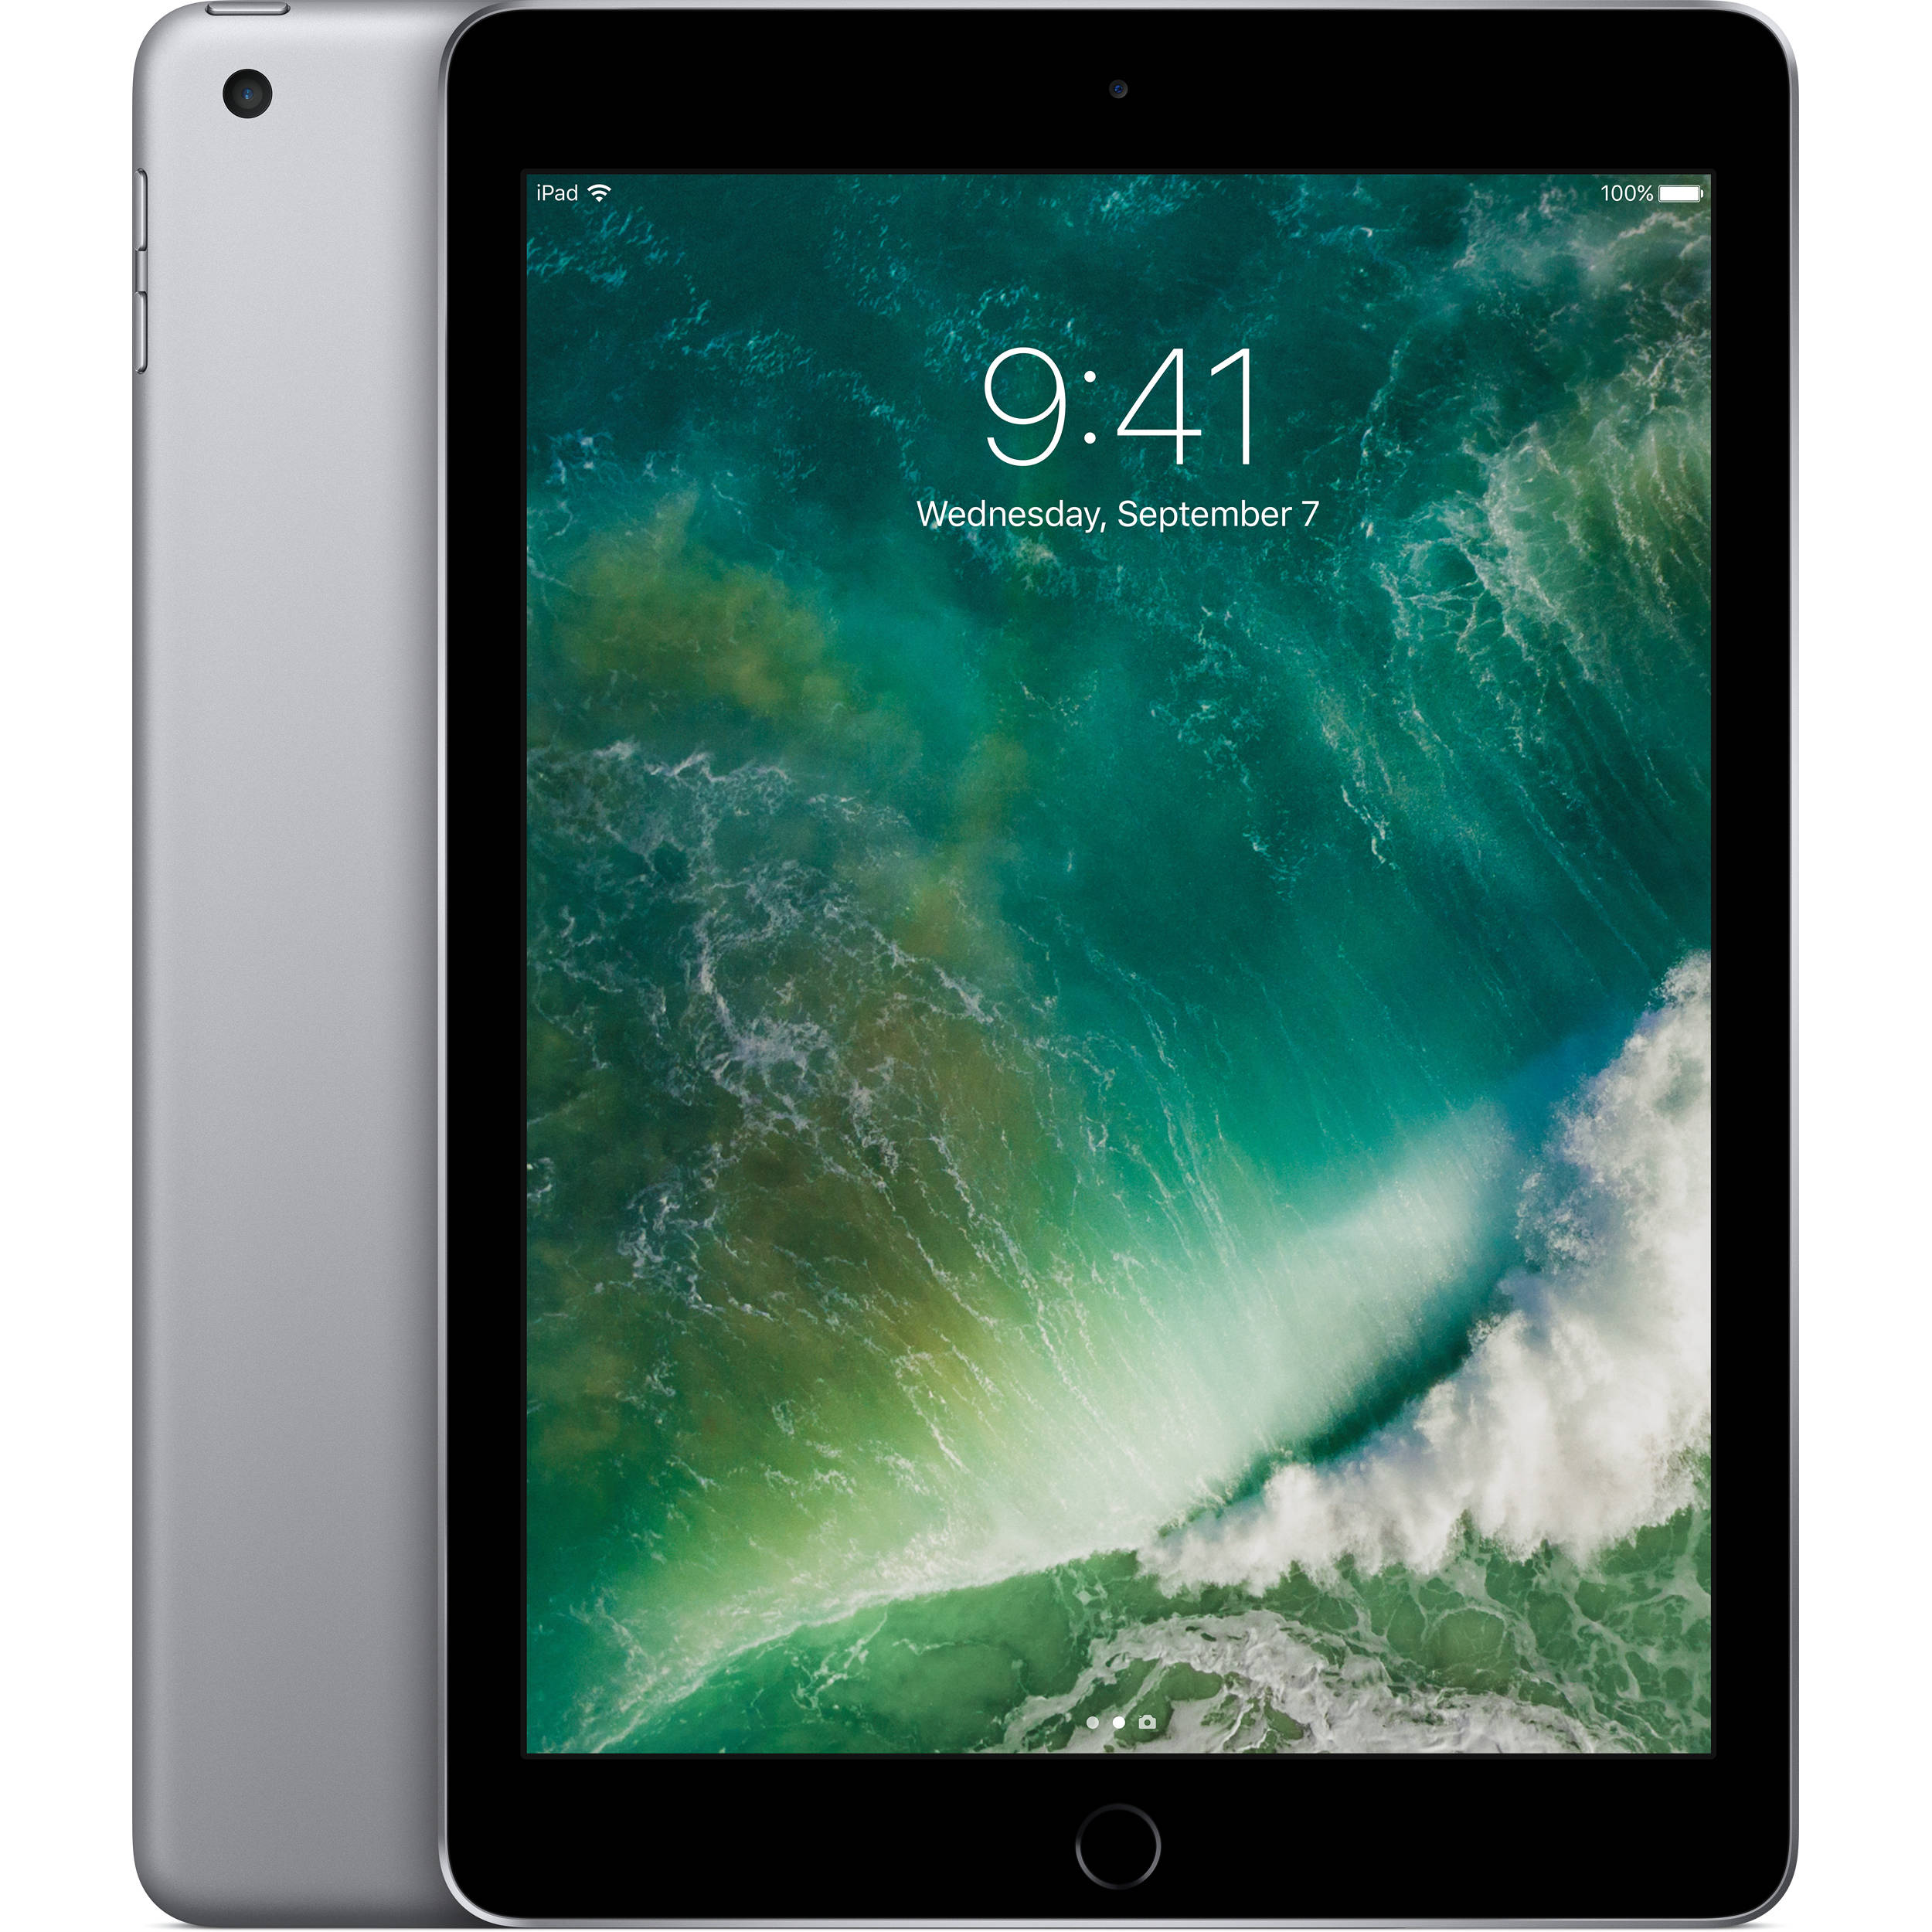 Refurbished Apple iPad 2017 128GB Space Gray Wi-Fi MP2H2LL/A